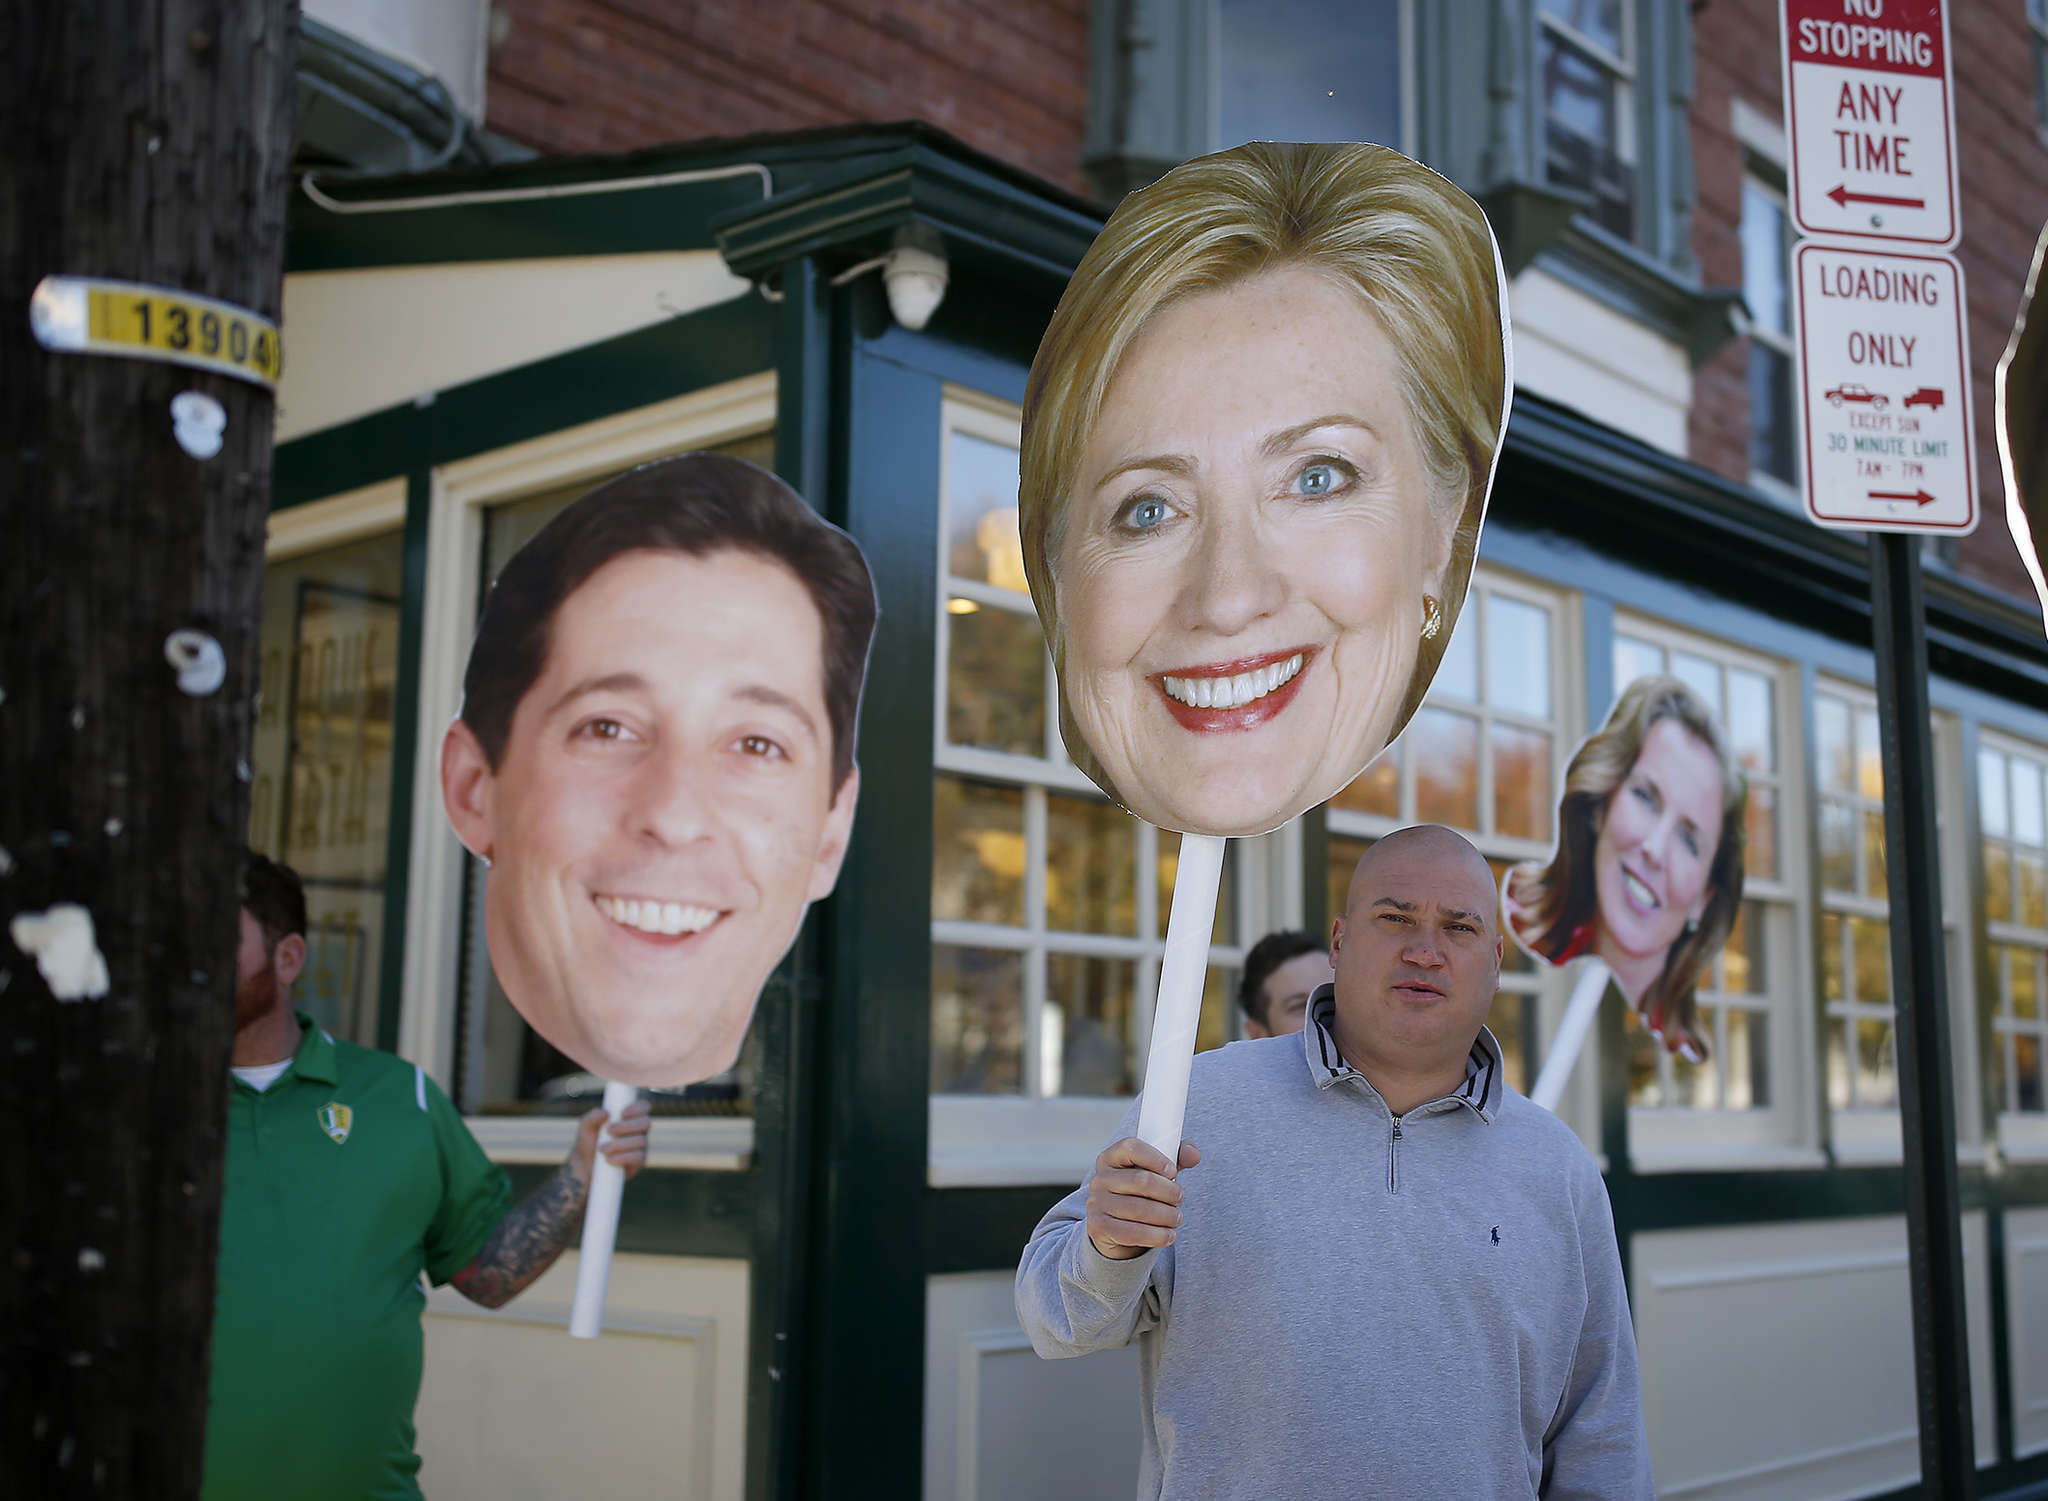 IBEW 98 member Eric Dwornik holds up a large photo of Hillary Clinton at Famous 4th Street Deli.